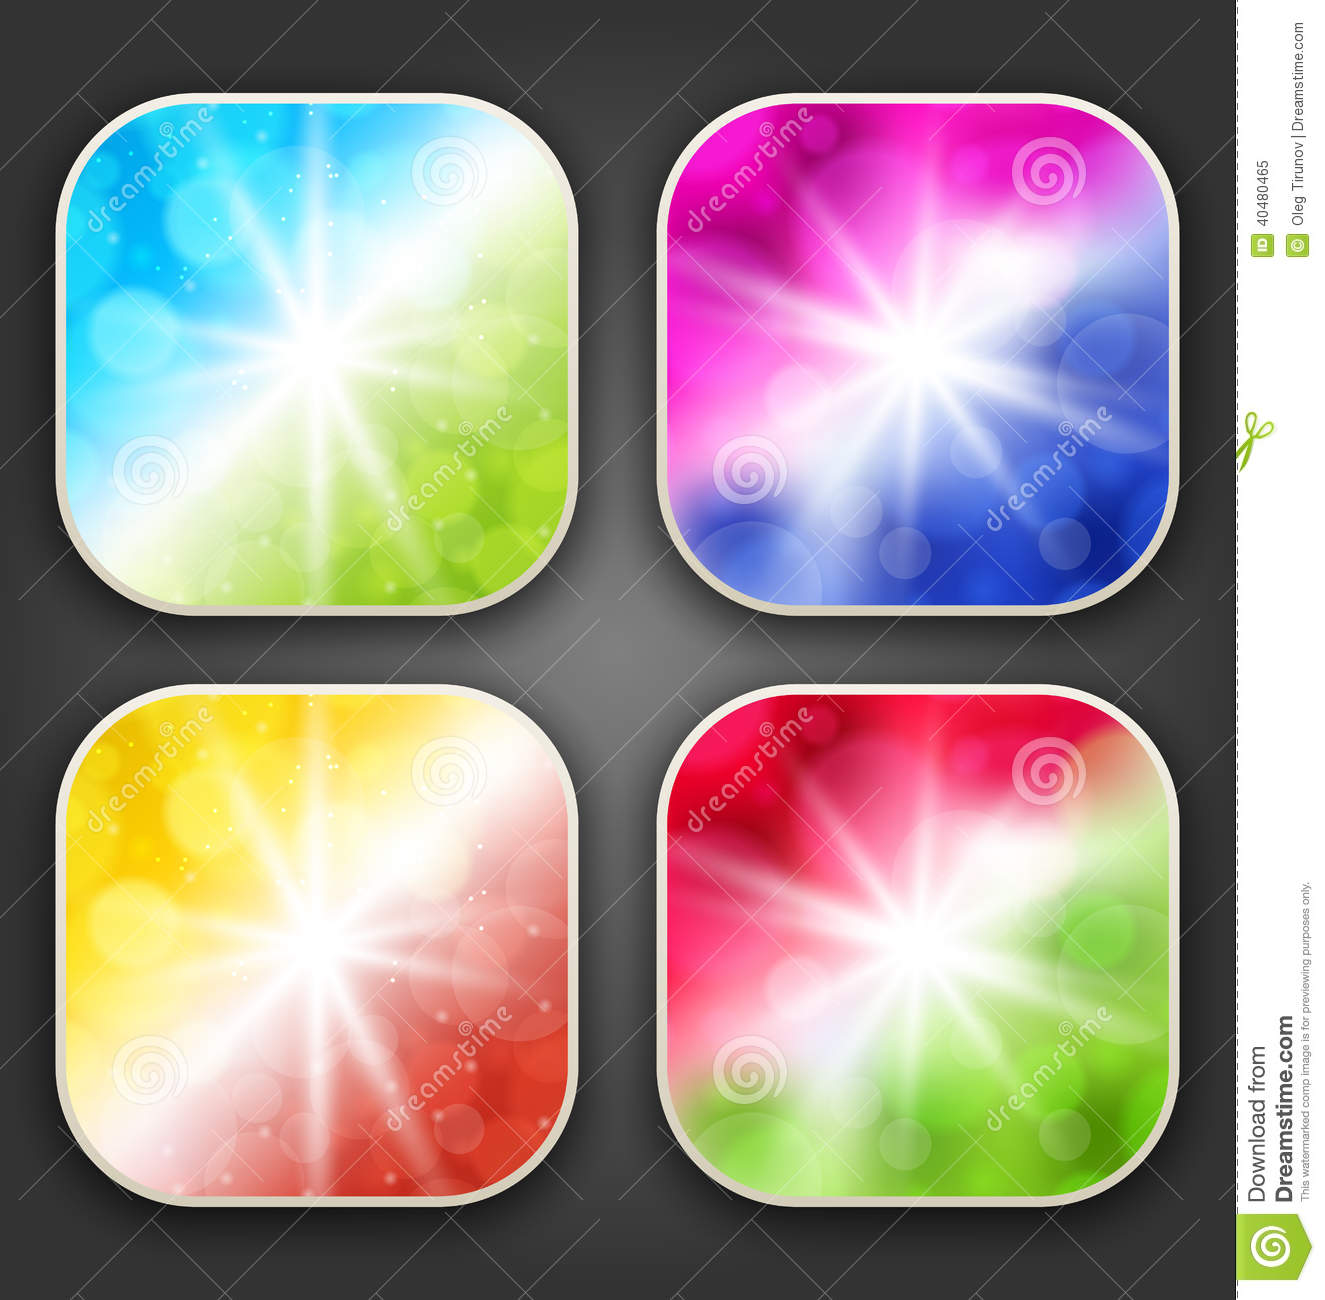 App Icons with Background